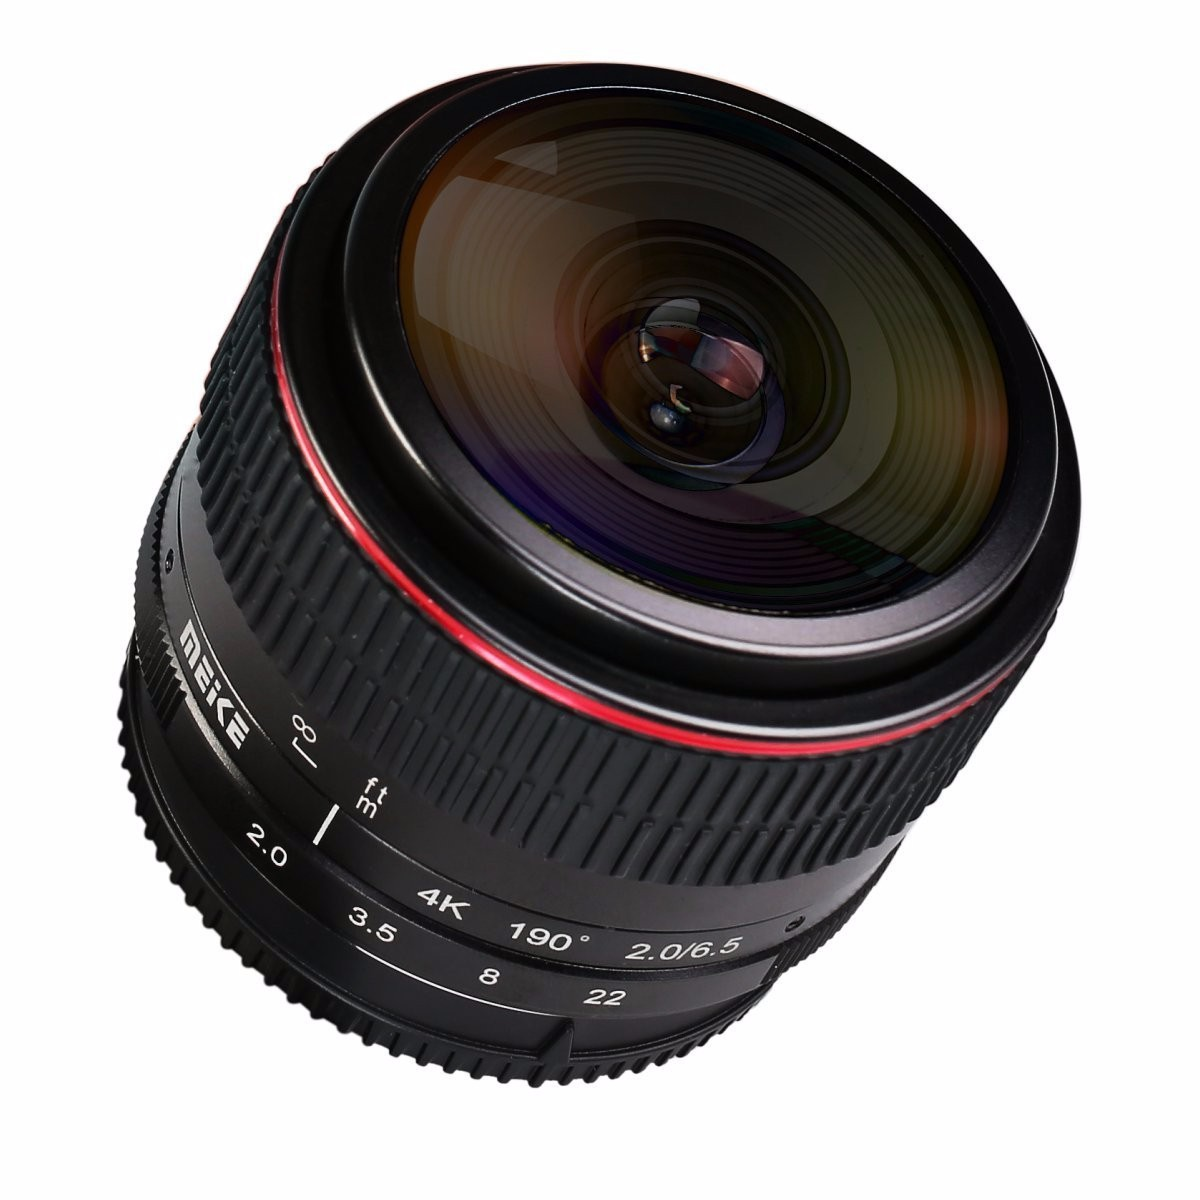 MEIKE MK-6.5mm F2.0 Fisheye Lens for Panasonic/Olympus Mirrorless MFT M4/3 Lens Camera meike 12mm f 2 8 wide angle fixed lens with removeable hood for panasonic olympus mirrorless camera mft m4 3 mount with aps c